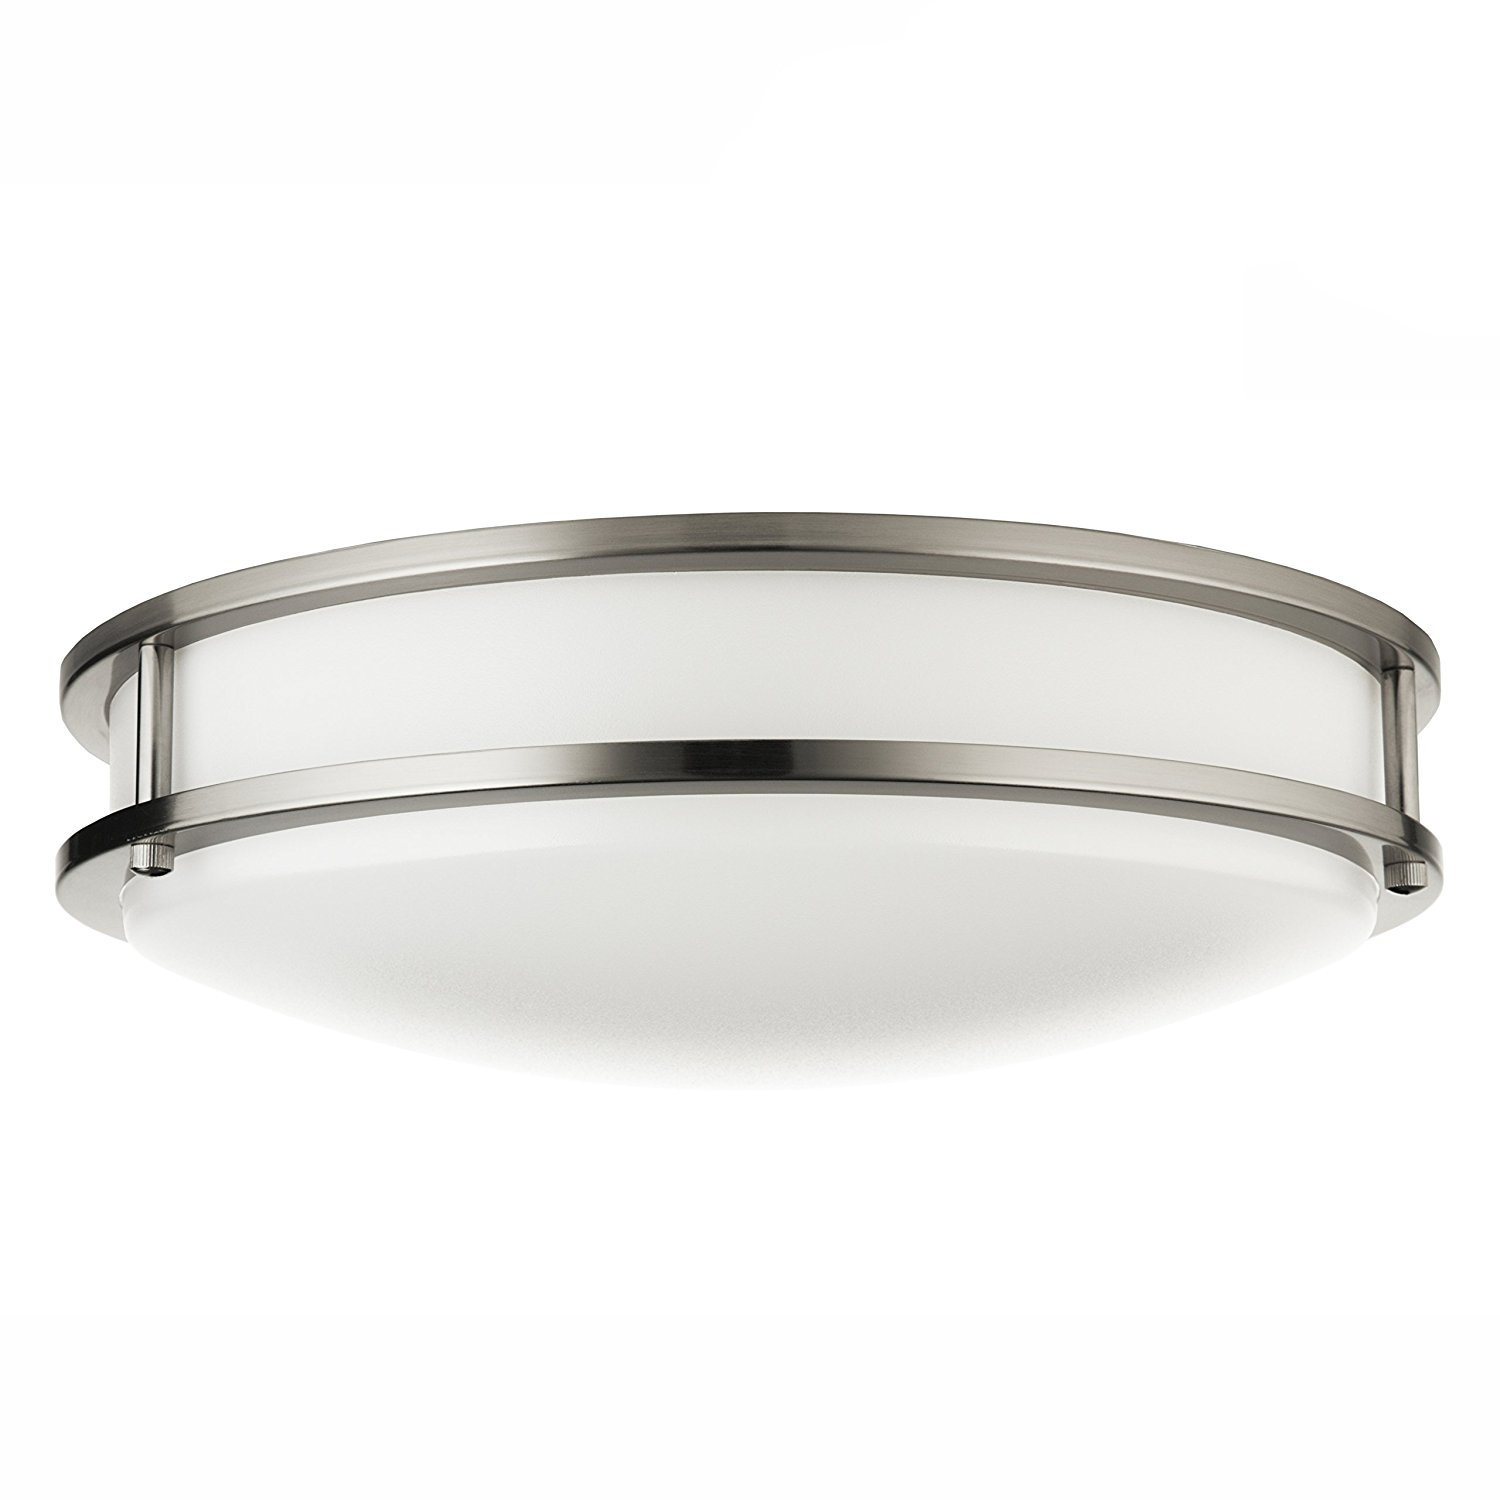 Flush Mounted Led Ceiling Lights